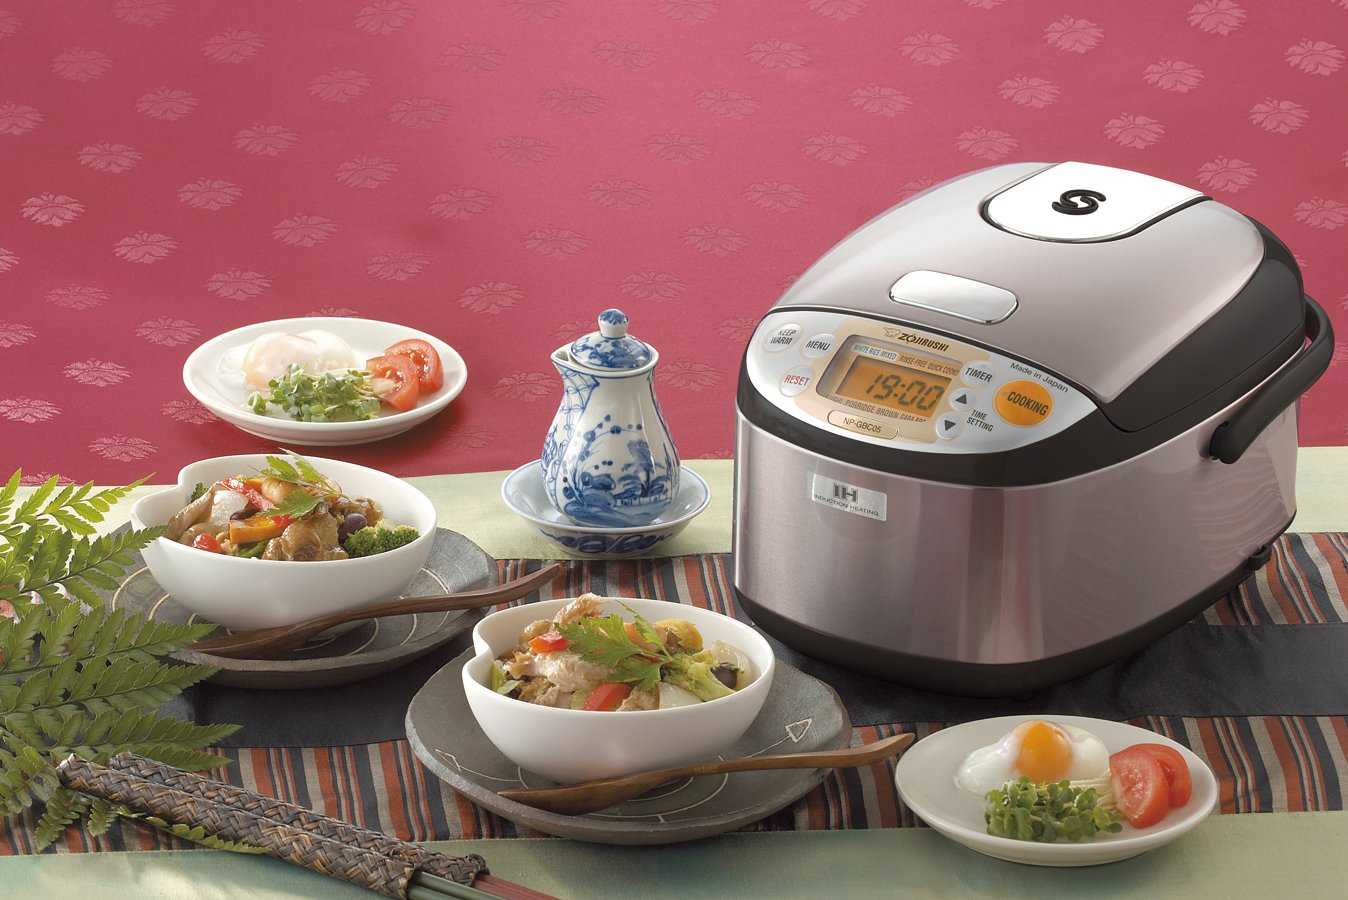 Zojirushi NP-GBC05XT Induction Heating System Rice Cooker and Warmer, 0.54 L, Stainless Dark Brown by Zojirushi